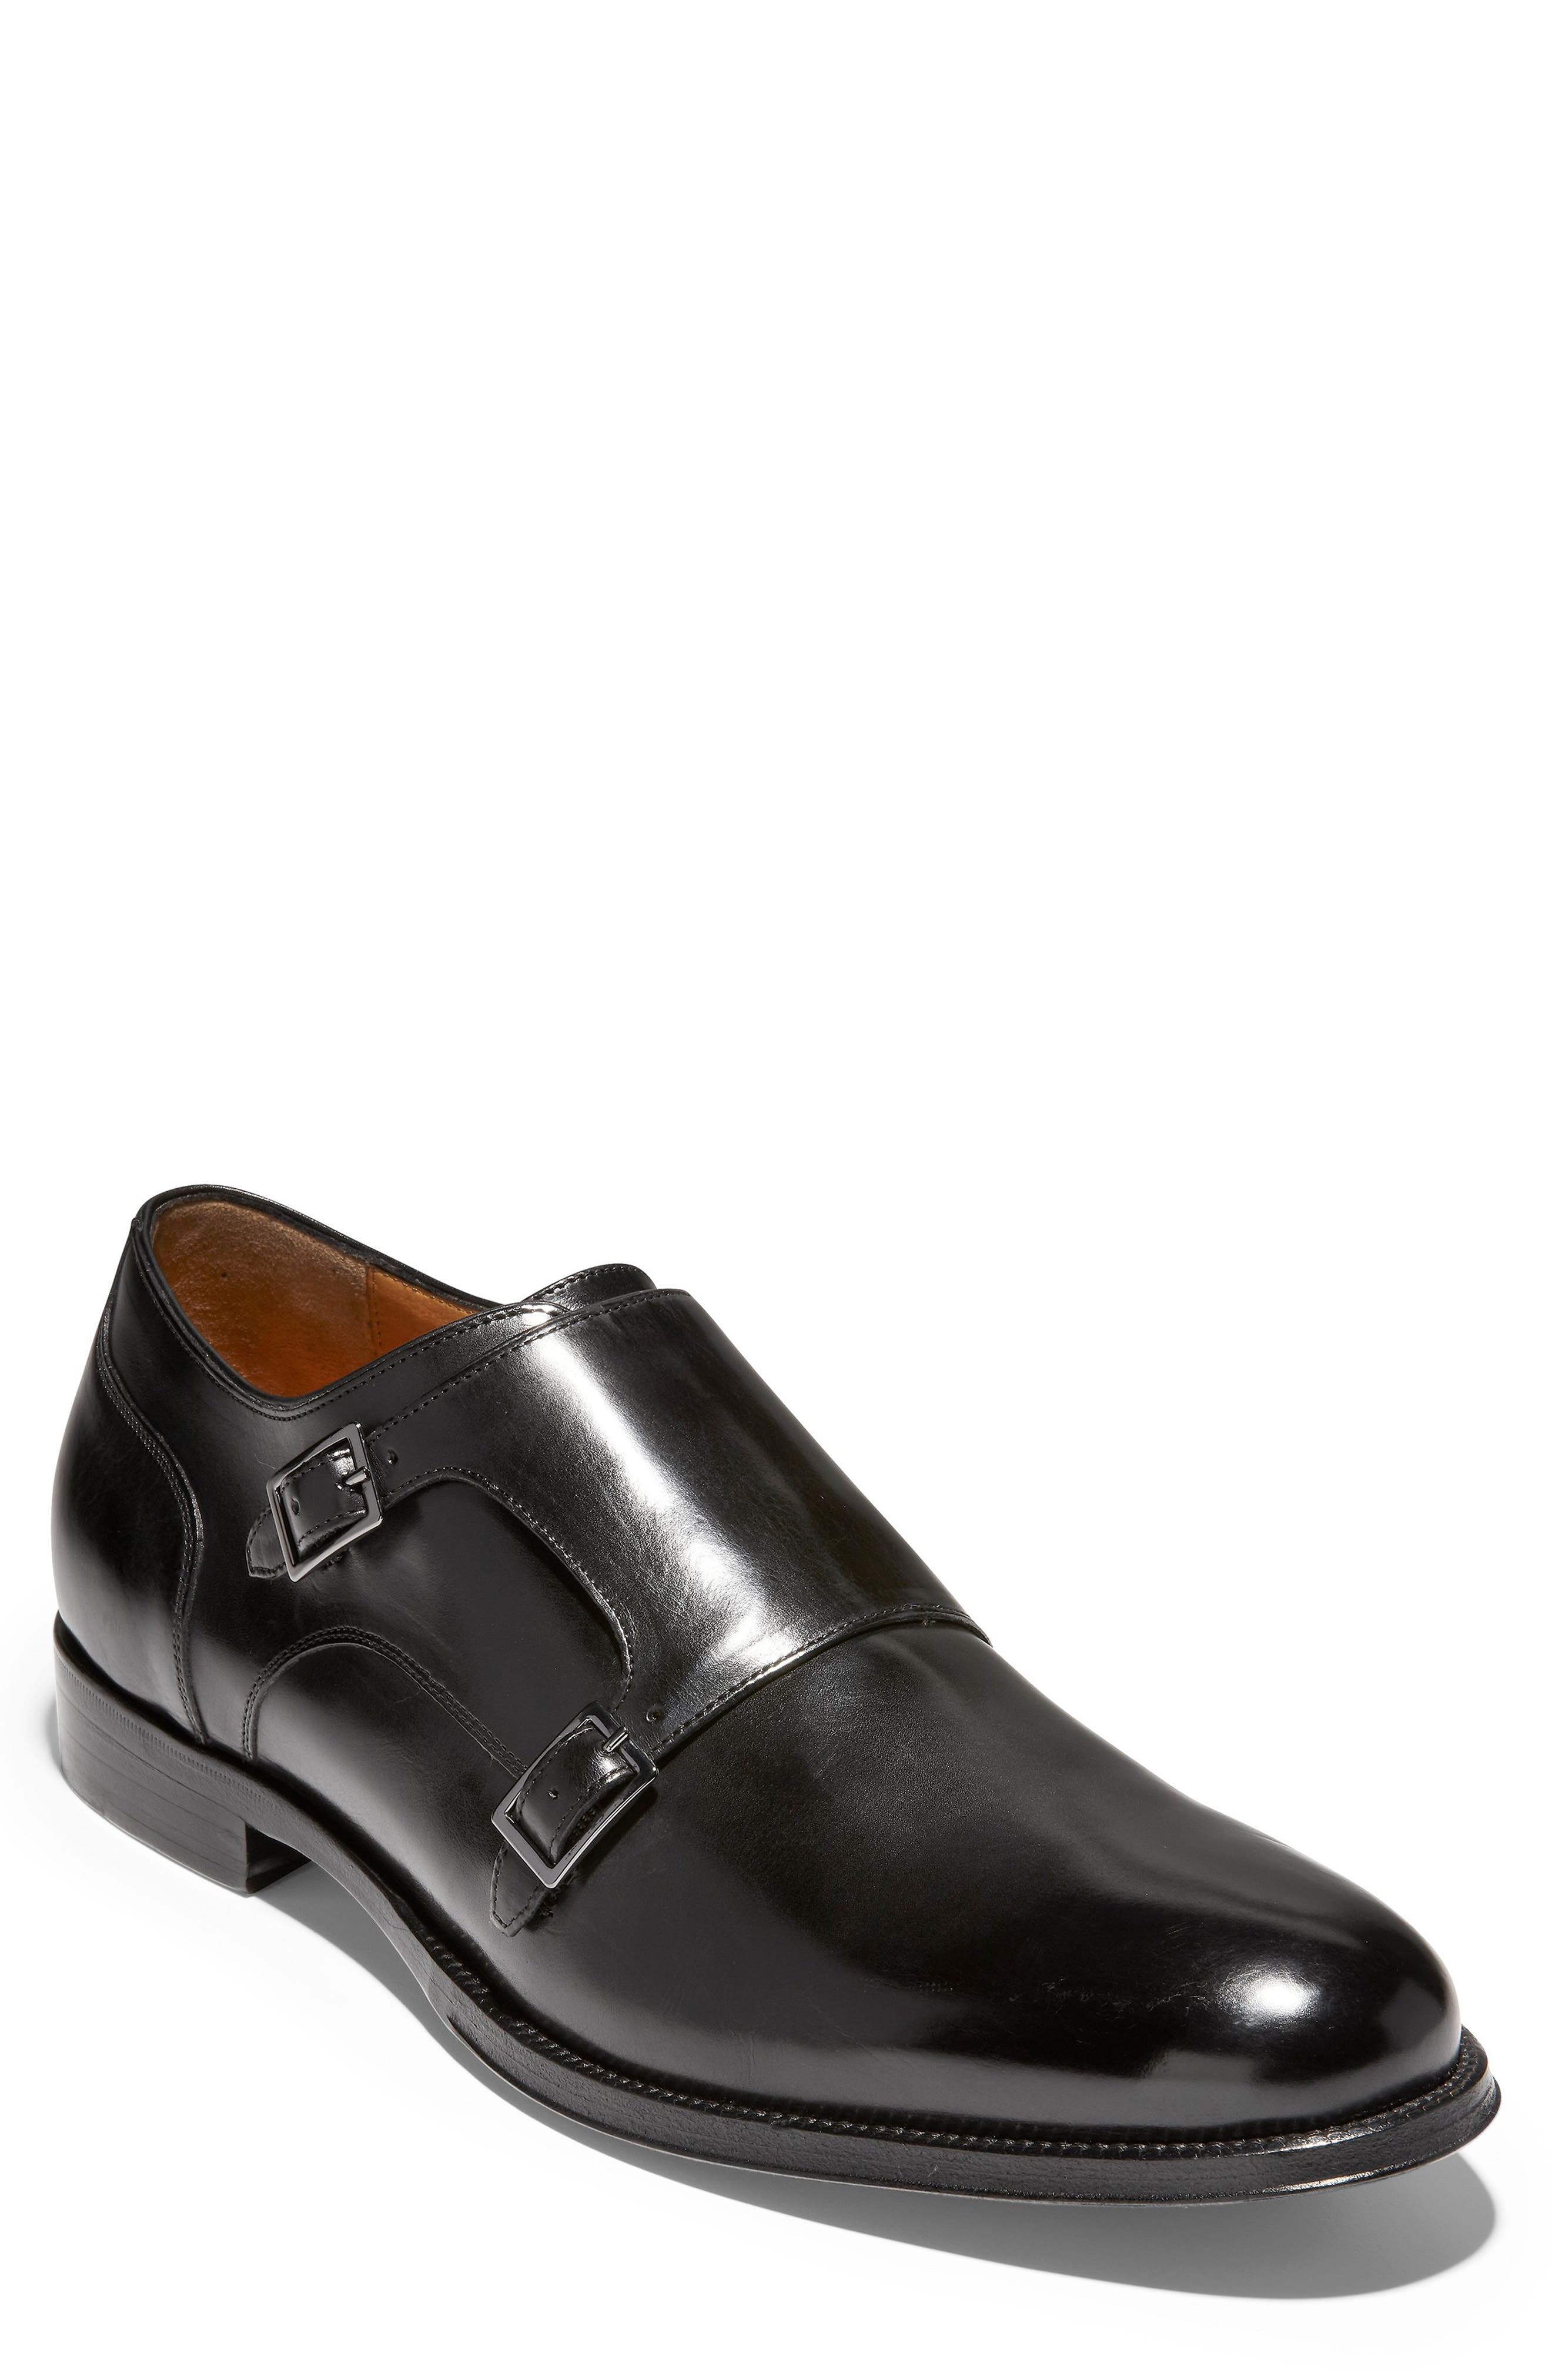 American Classics Gramercy Double Strap Monk Shoe,                         Main,                         color, BLACK LEATHER